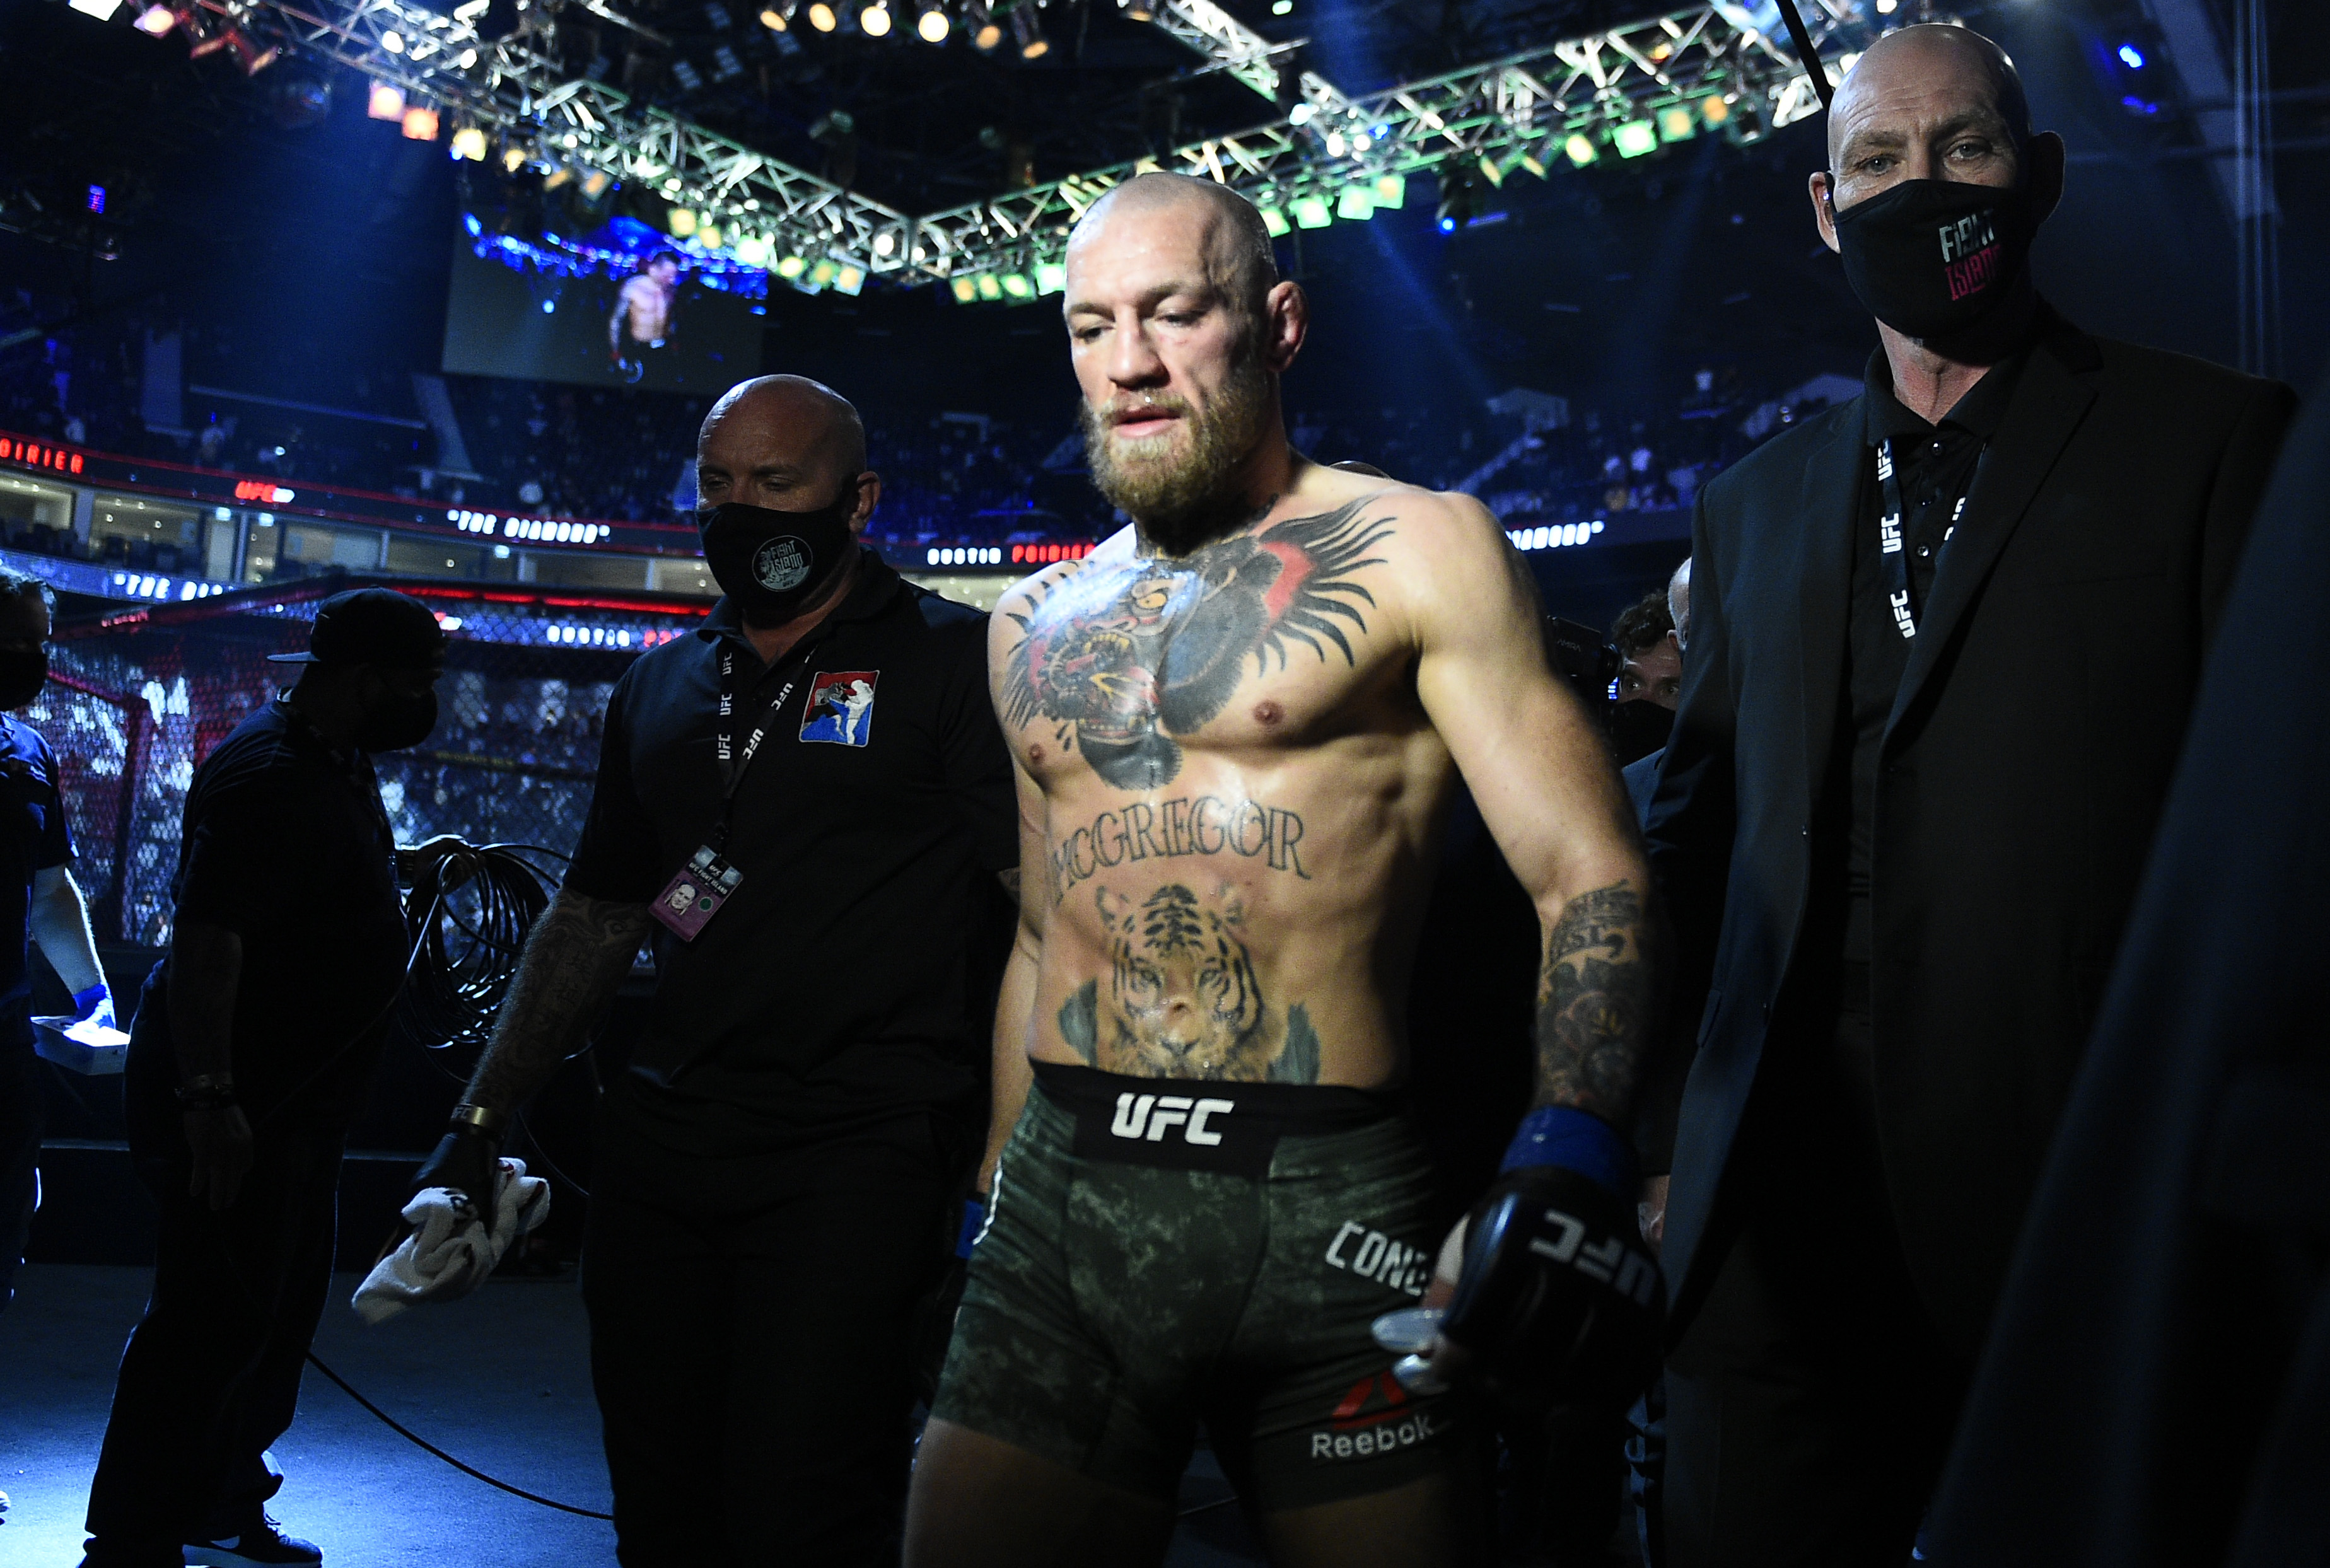 Conor McGregor walking to the ring before UFC 257